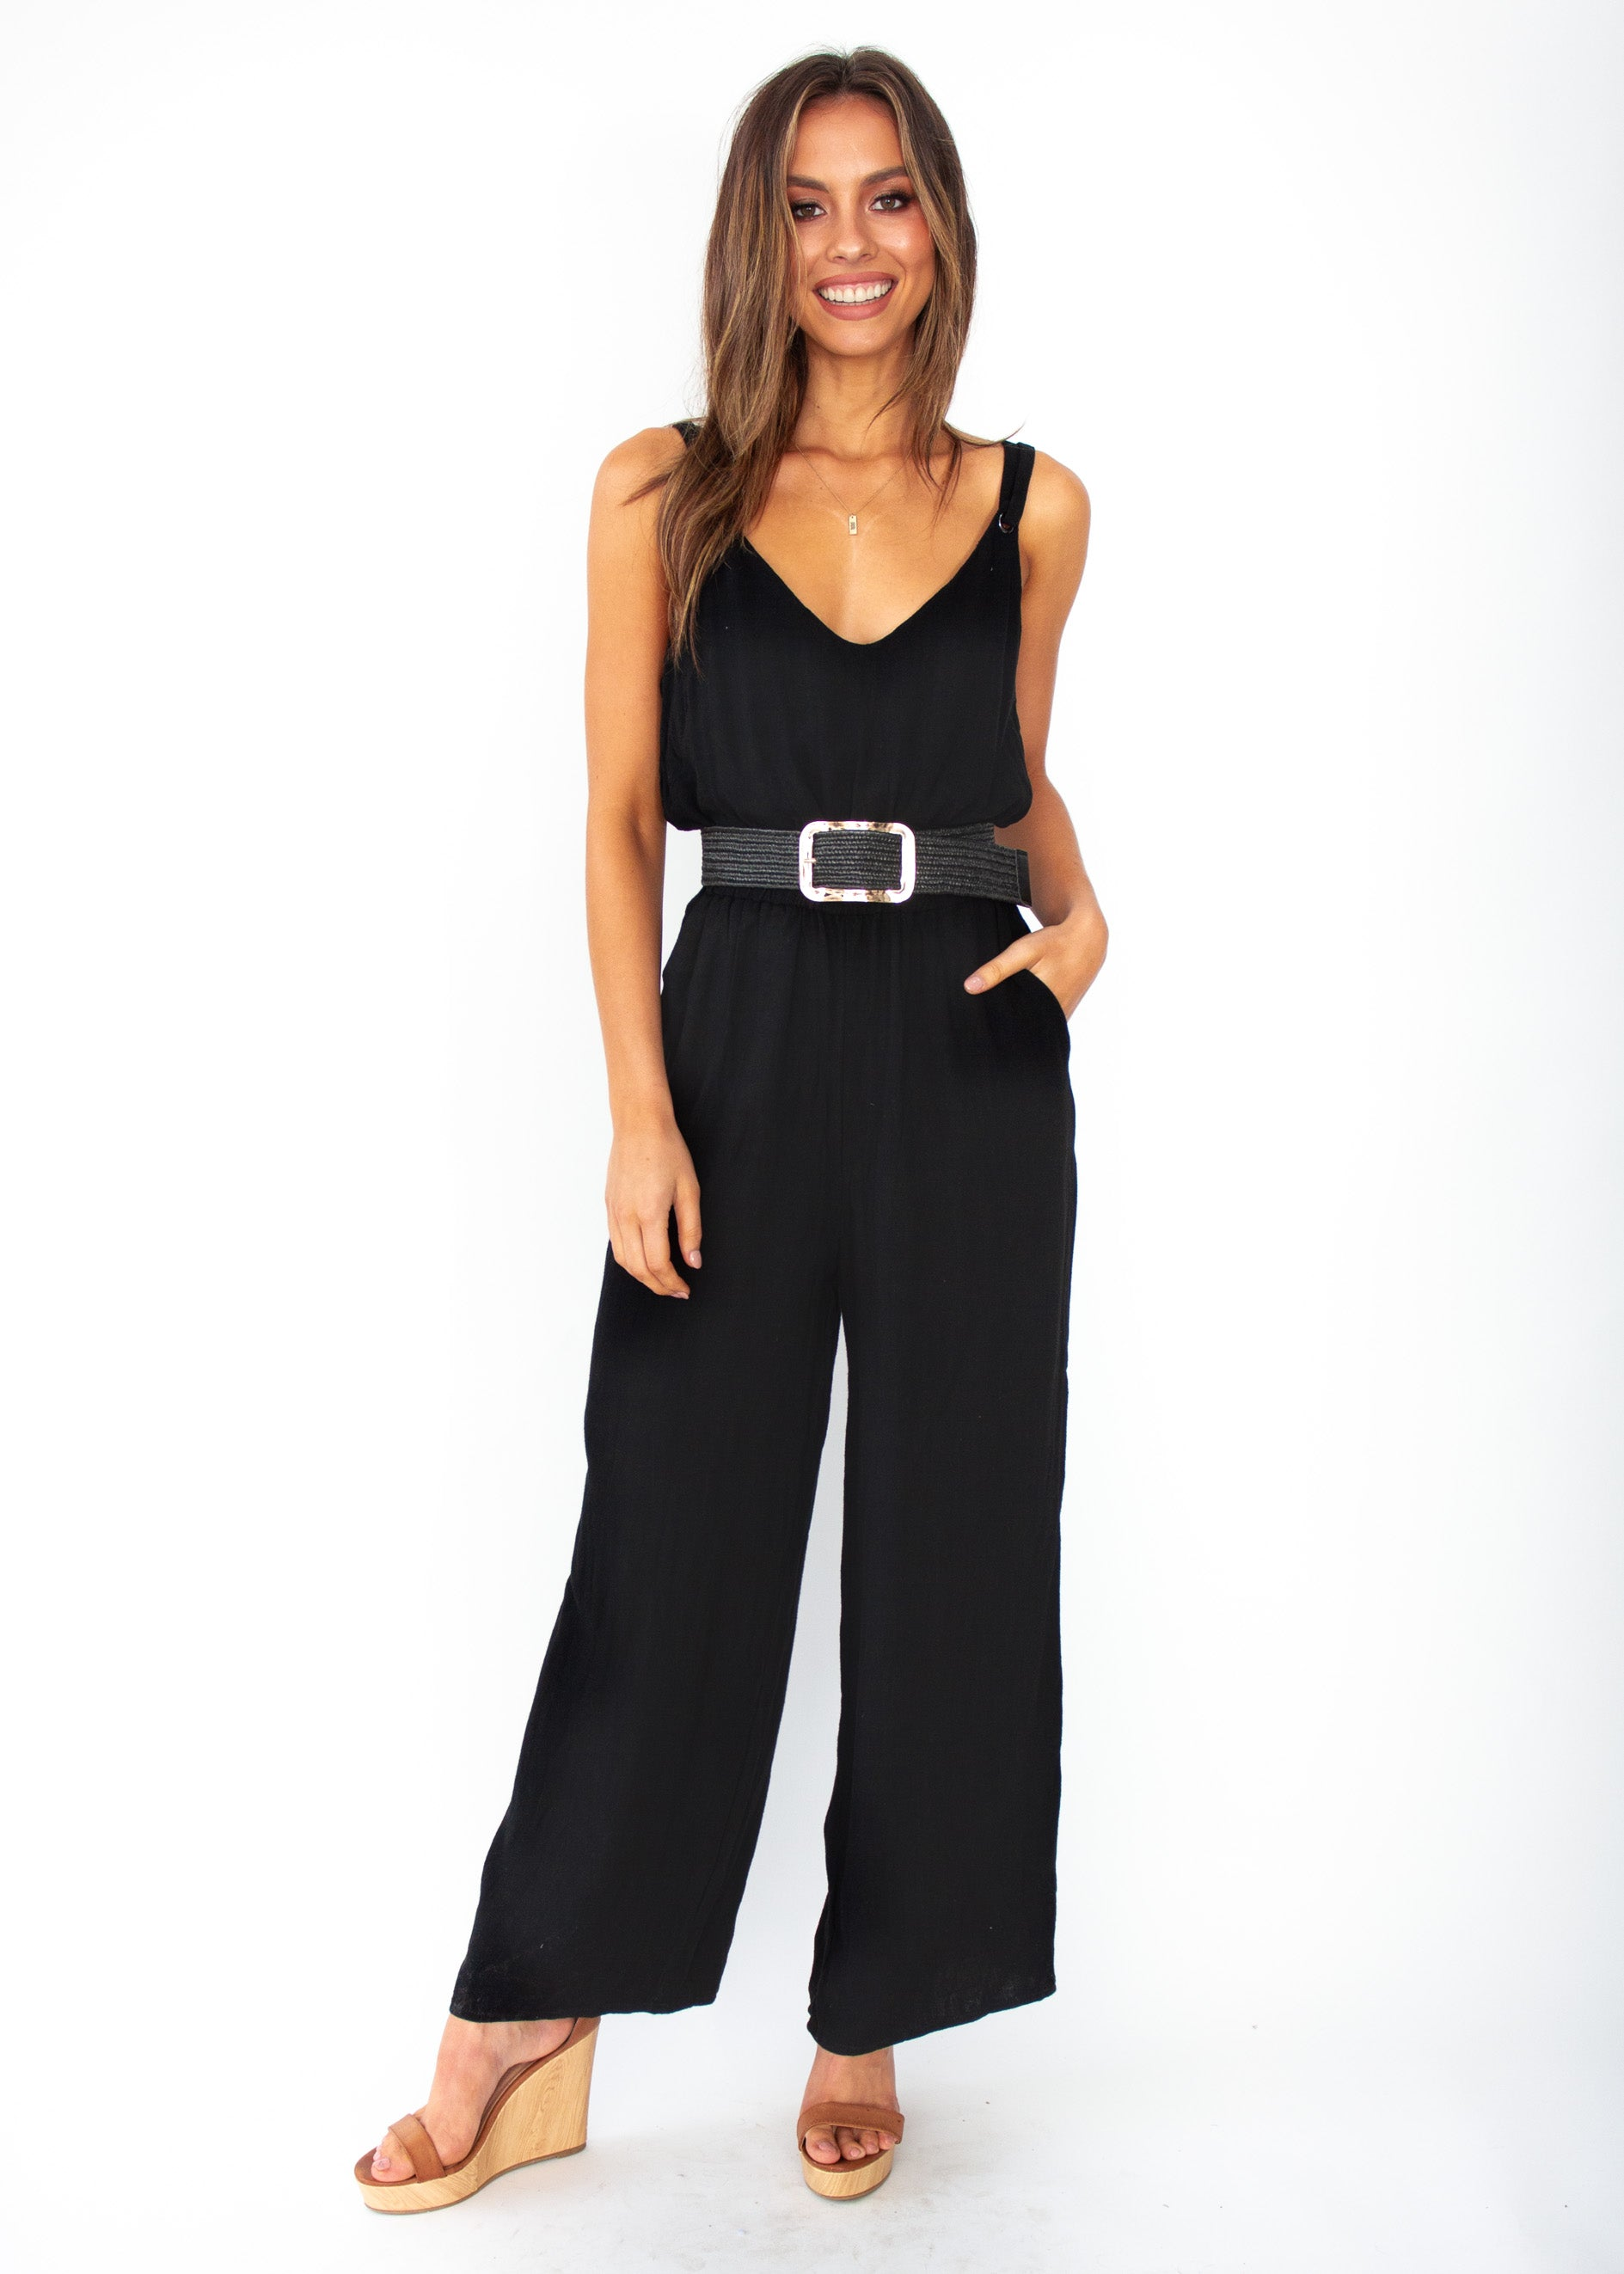 Women's Take Me Higher Pantsuit - Black